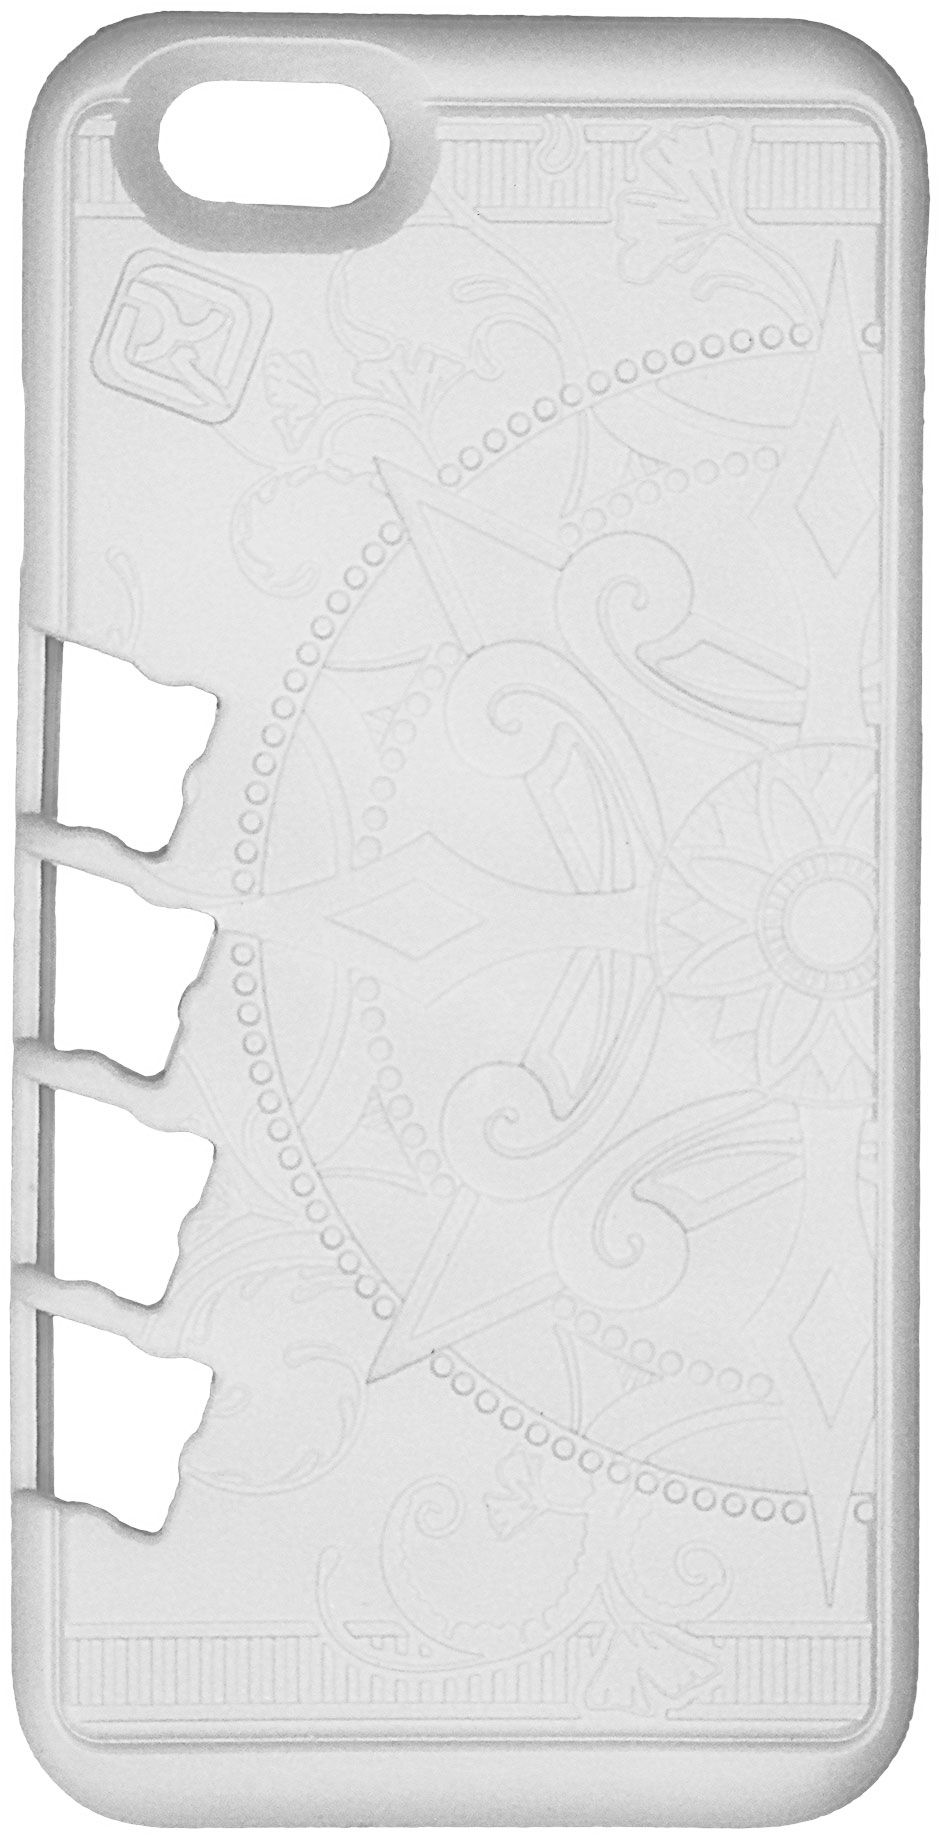 Klecker Stowaway Tool Carrier iPhone 6/6S Case, Organic, White